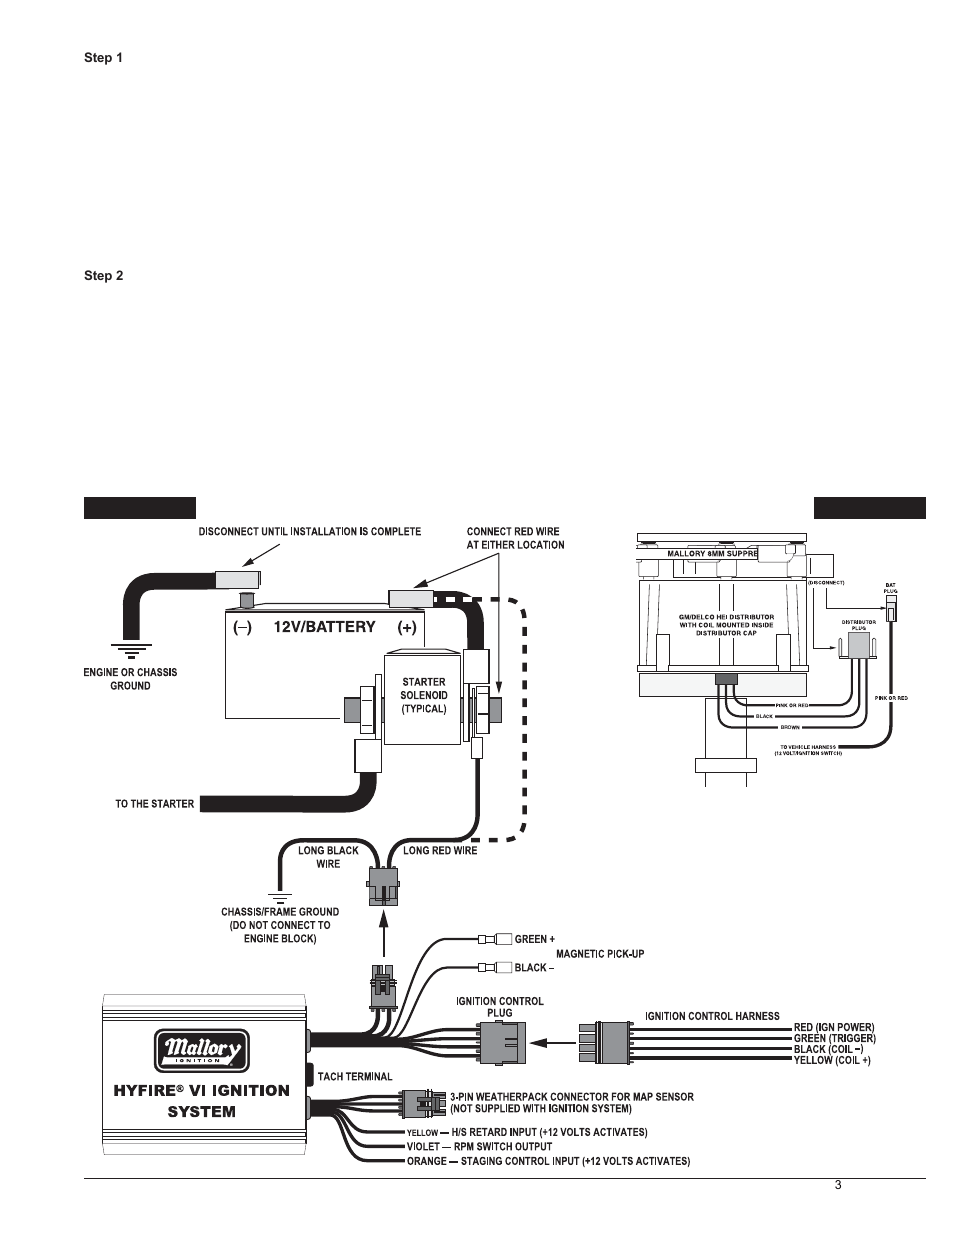 hight resolution of mallory hyfire wiring diagram wiring diagram centrebasic wiring procedure mallory ignition mallory hyfire vi seriesbasic wiring